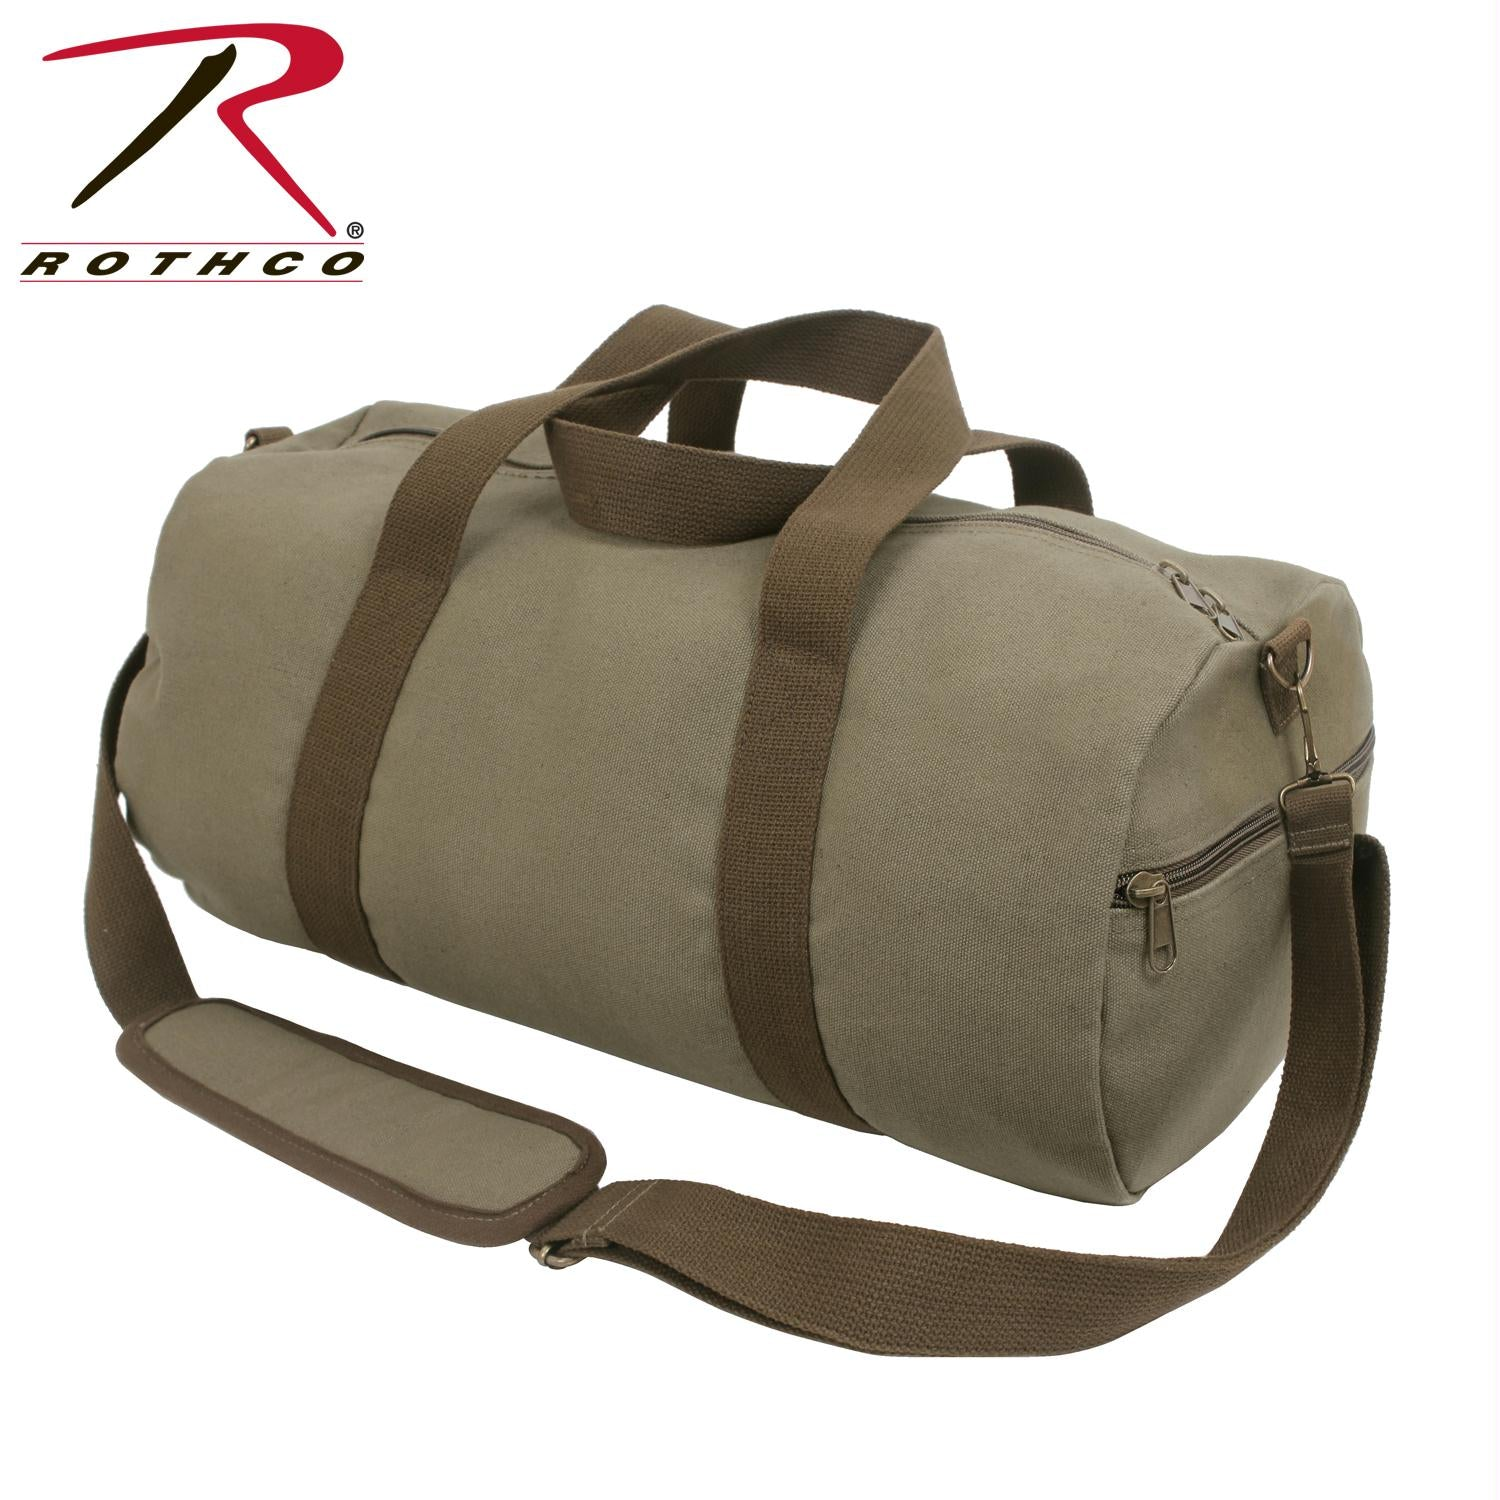 Rothco Two-Tone Canvas Shoulder Duffle Bag - Vintage Olive with Brown Straps - Olive Drab